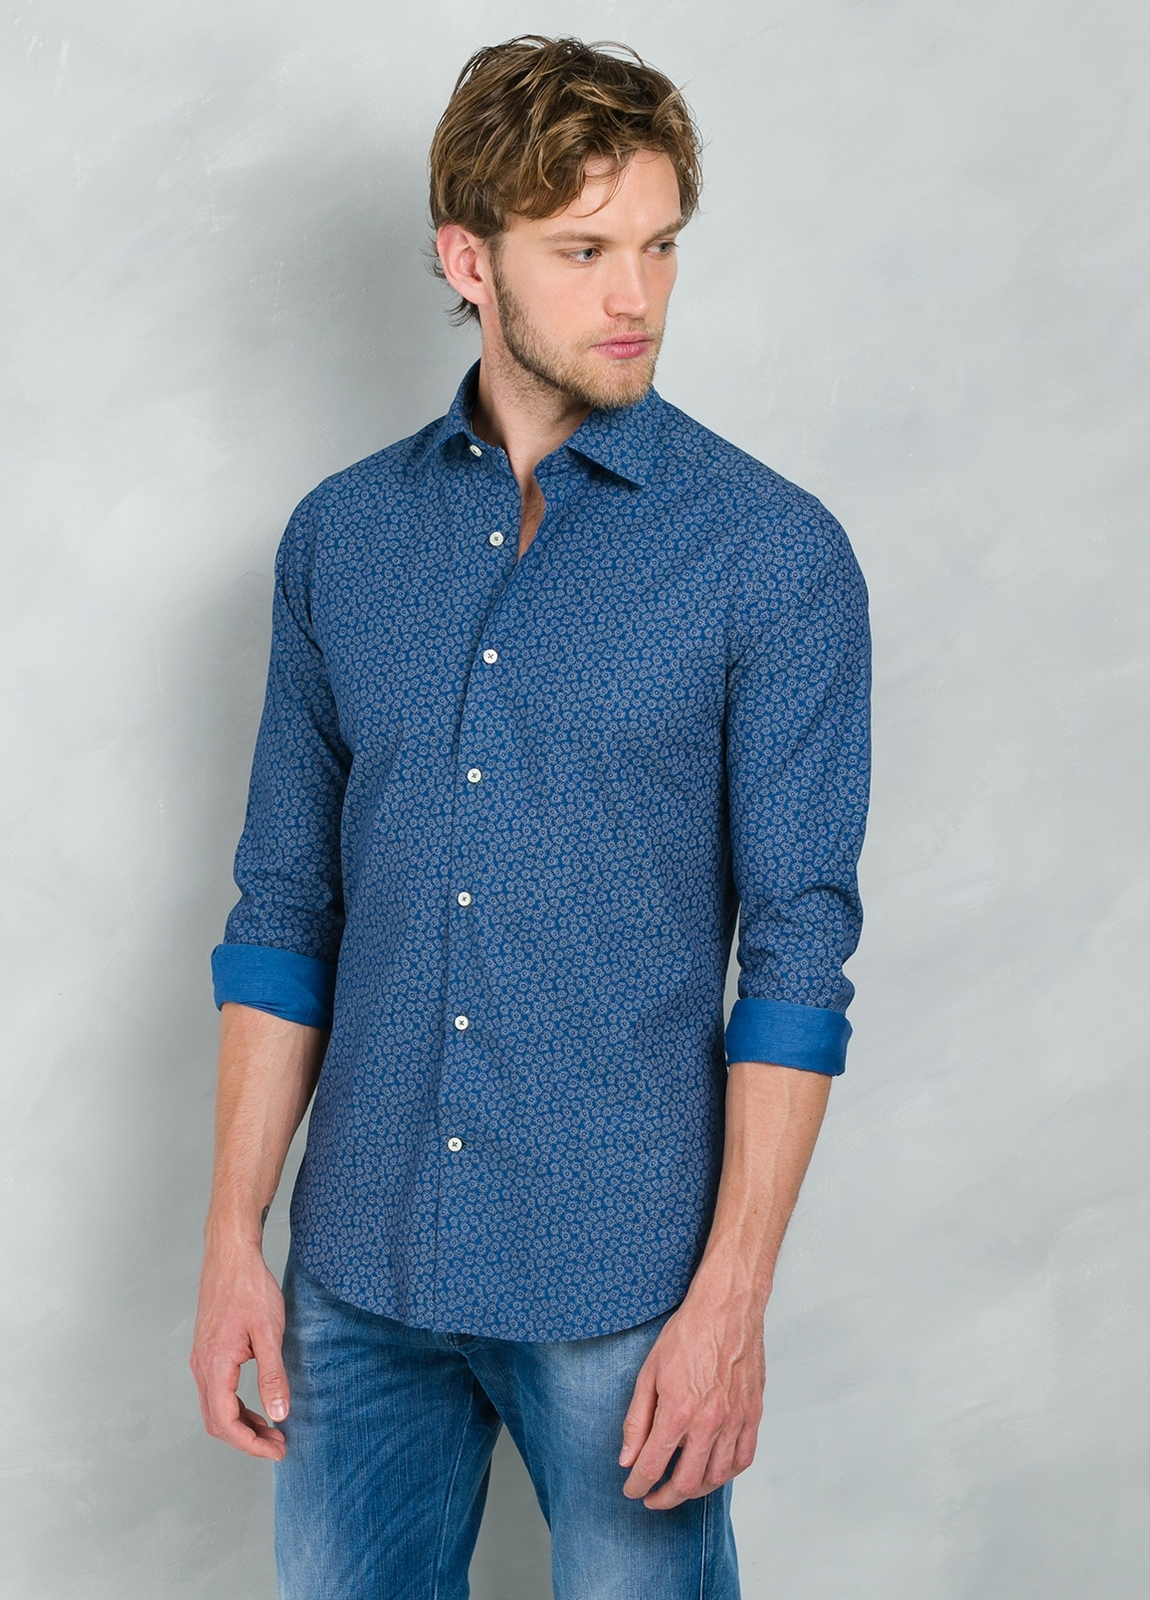 Camisa Casual Wear SLIM FIT Modelo PORTO estampado floral color azul, 100% Algodón.